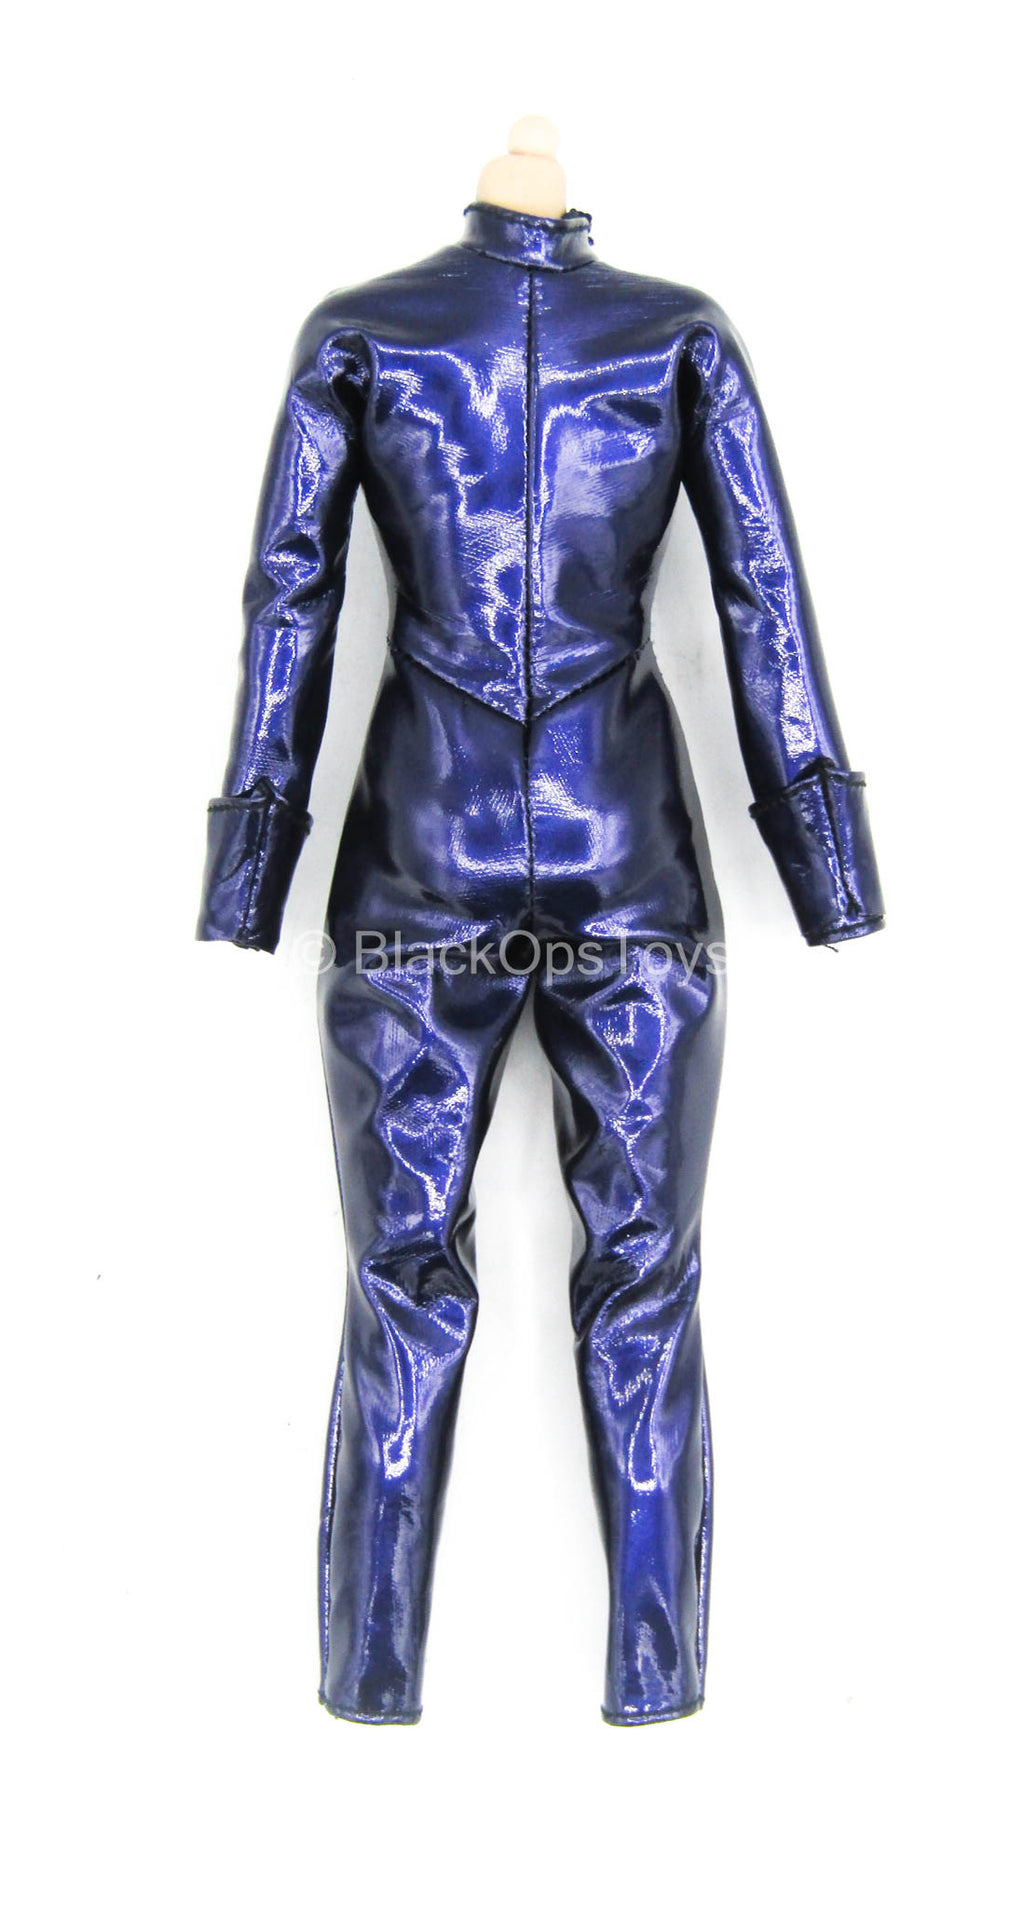 Comic Book Catwoman - Female Purple Leather Like Body Suit